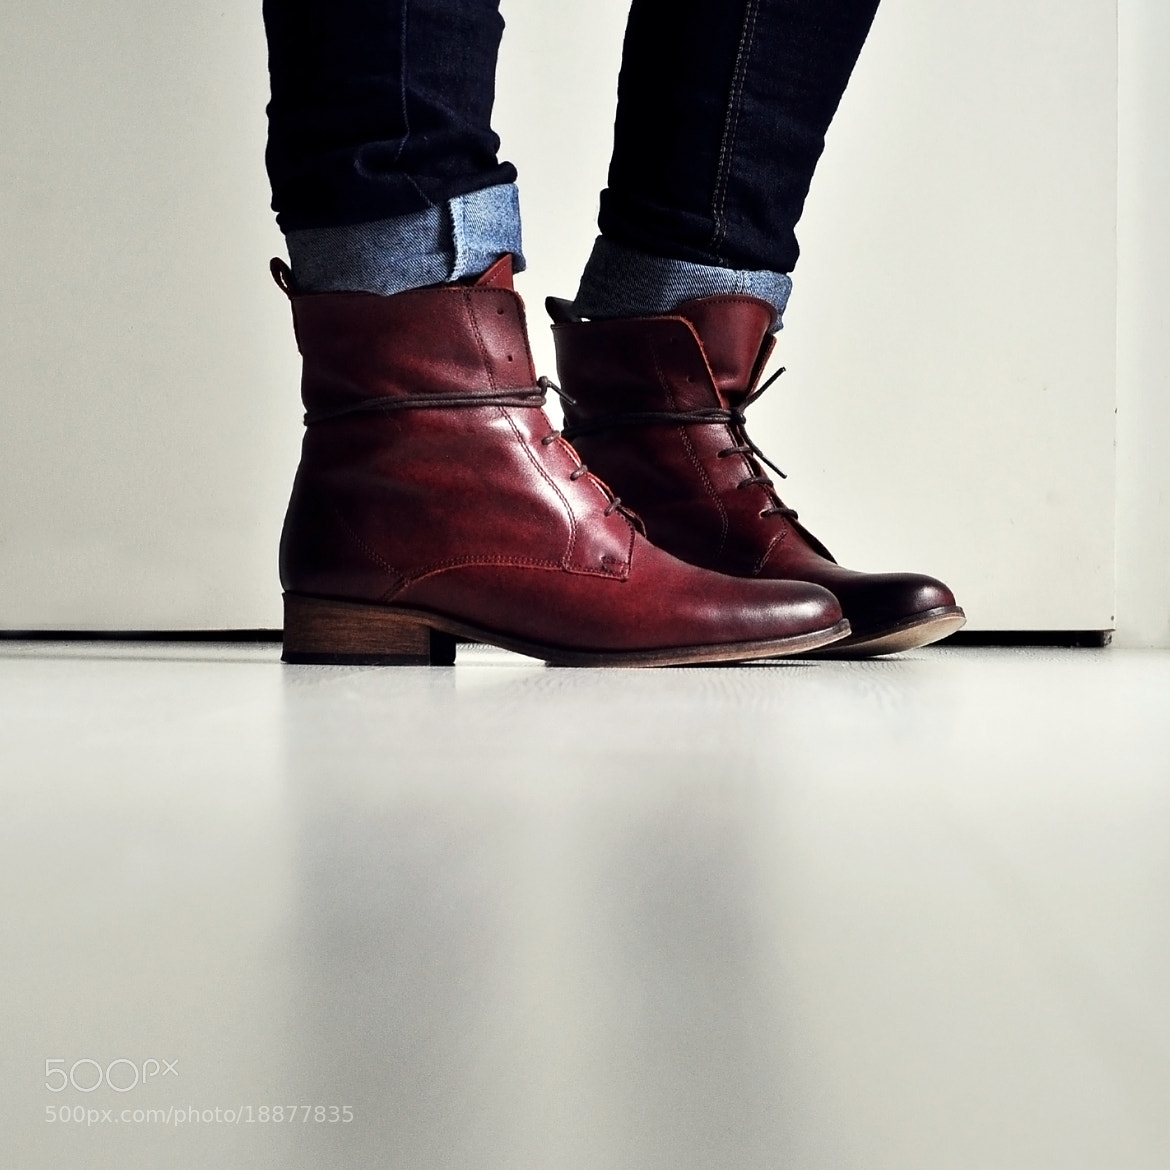 Photograph step by step by Camille Joly on 500px